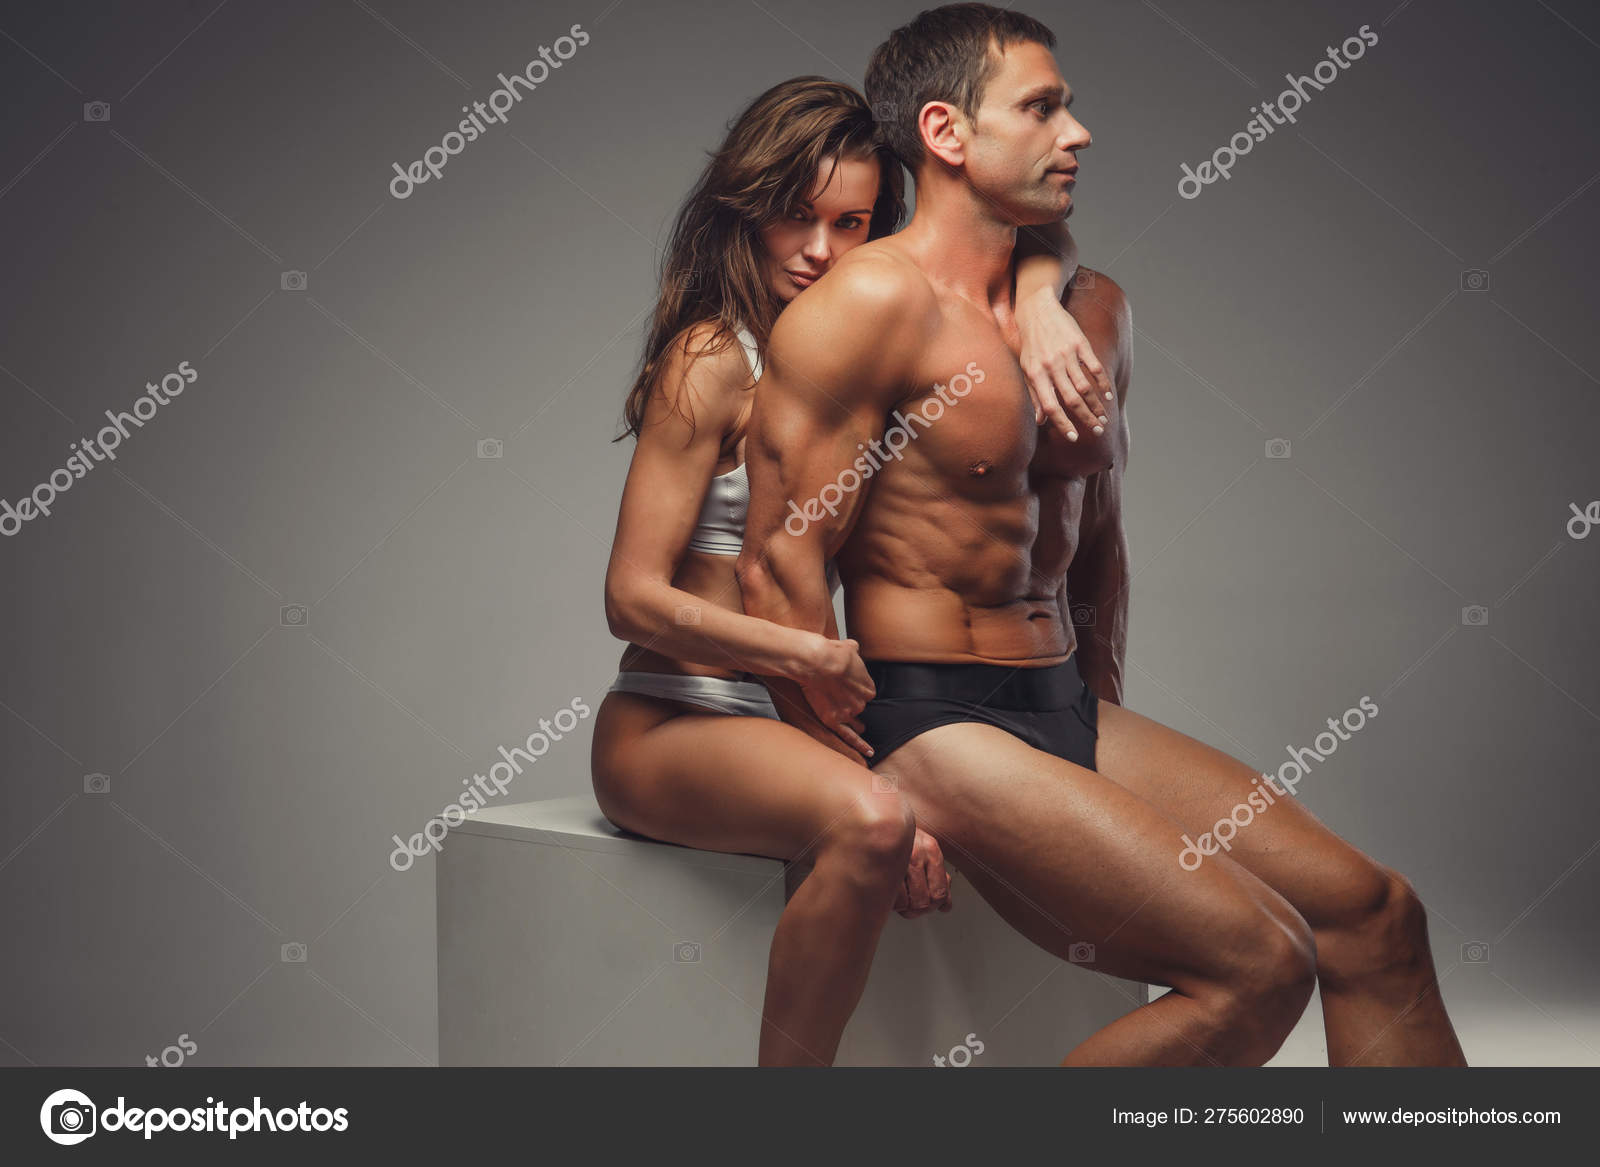 Nude Athletic Couples photo 2